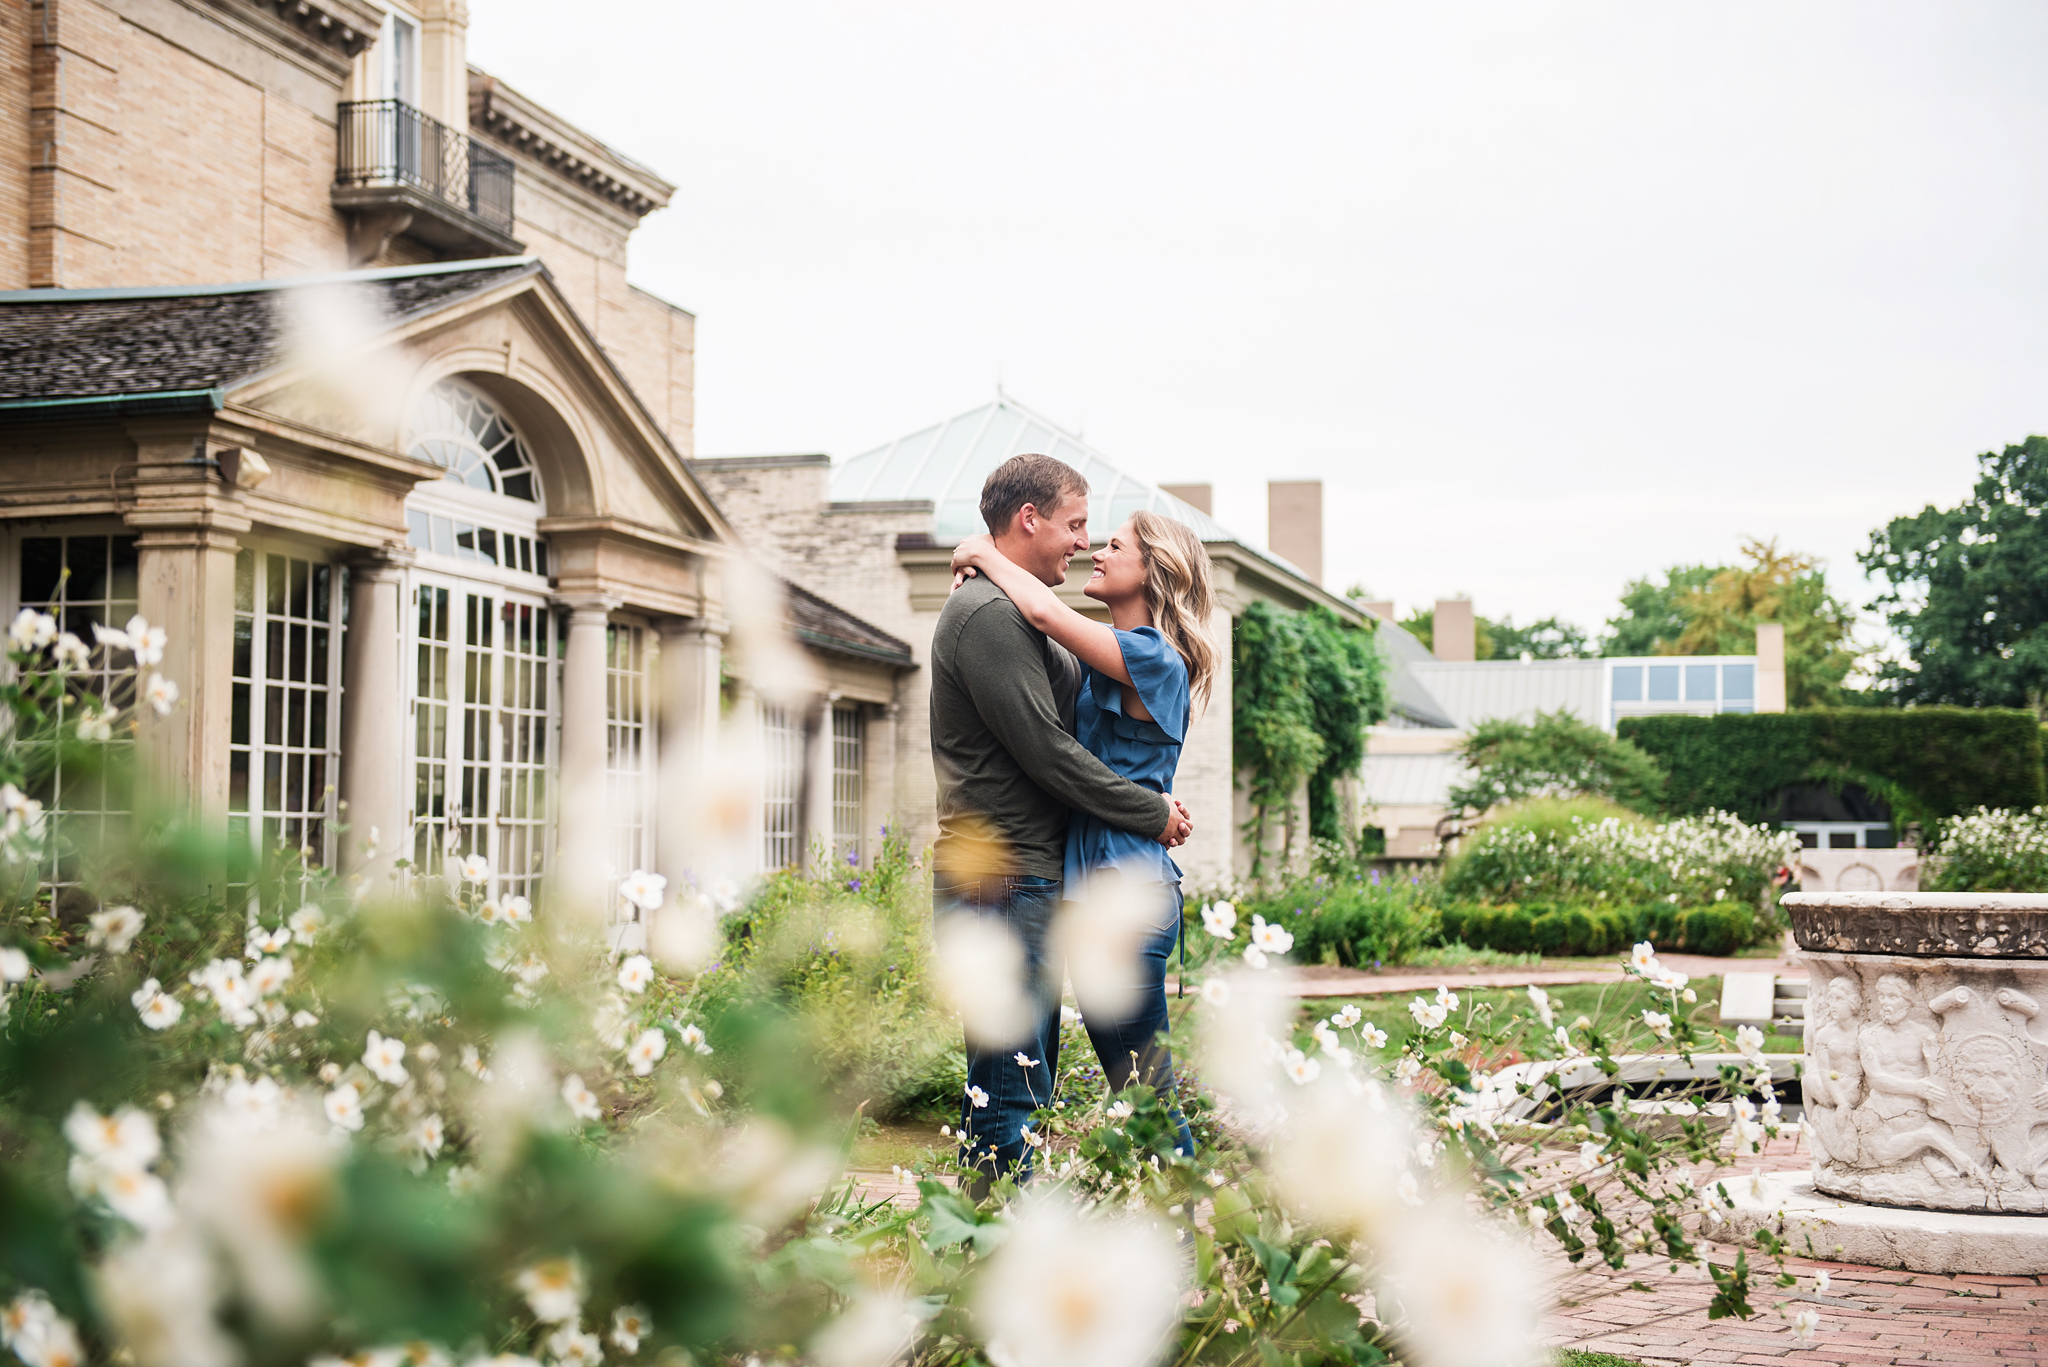 George_Eastman_House_Rochester_Yacht_Club_Rochester_Engagement_Session_JILL_STUDIO_Rochester_NY_Photographer_DSC_8048.jpg